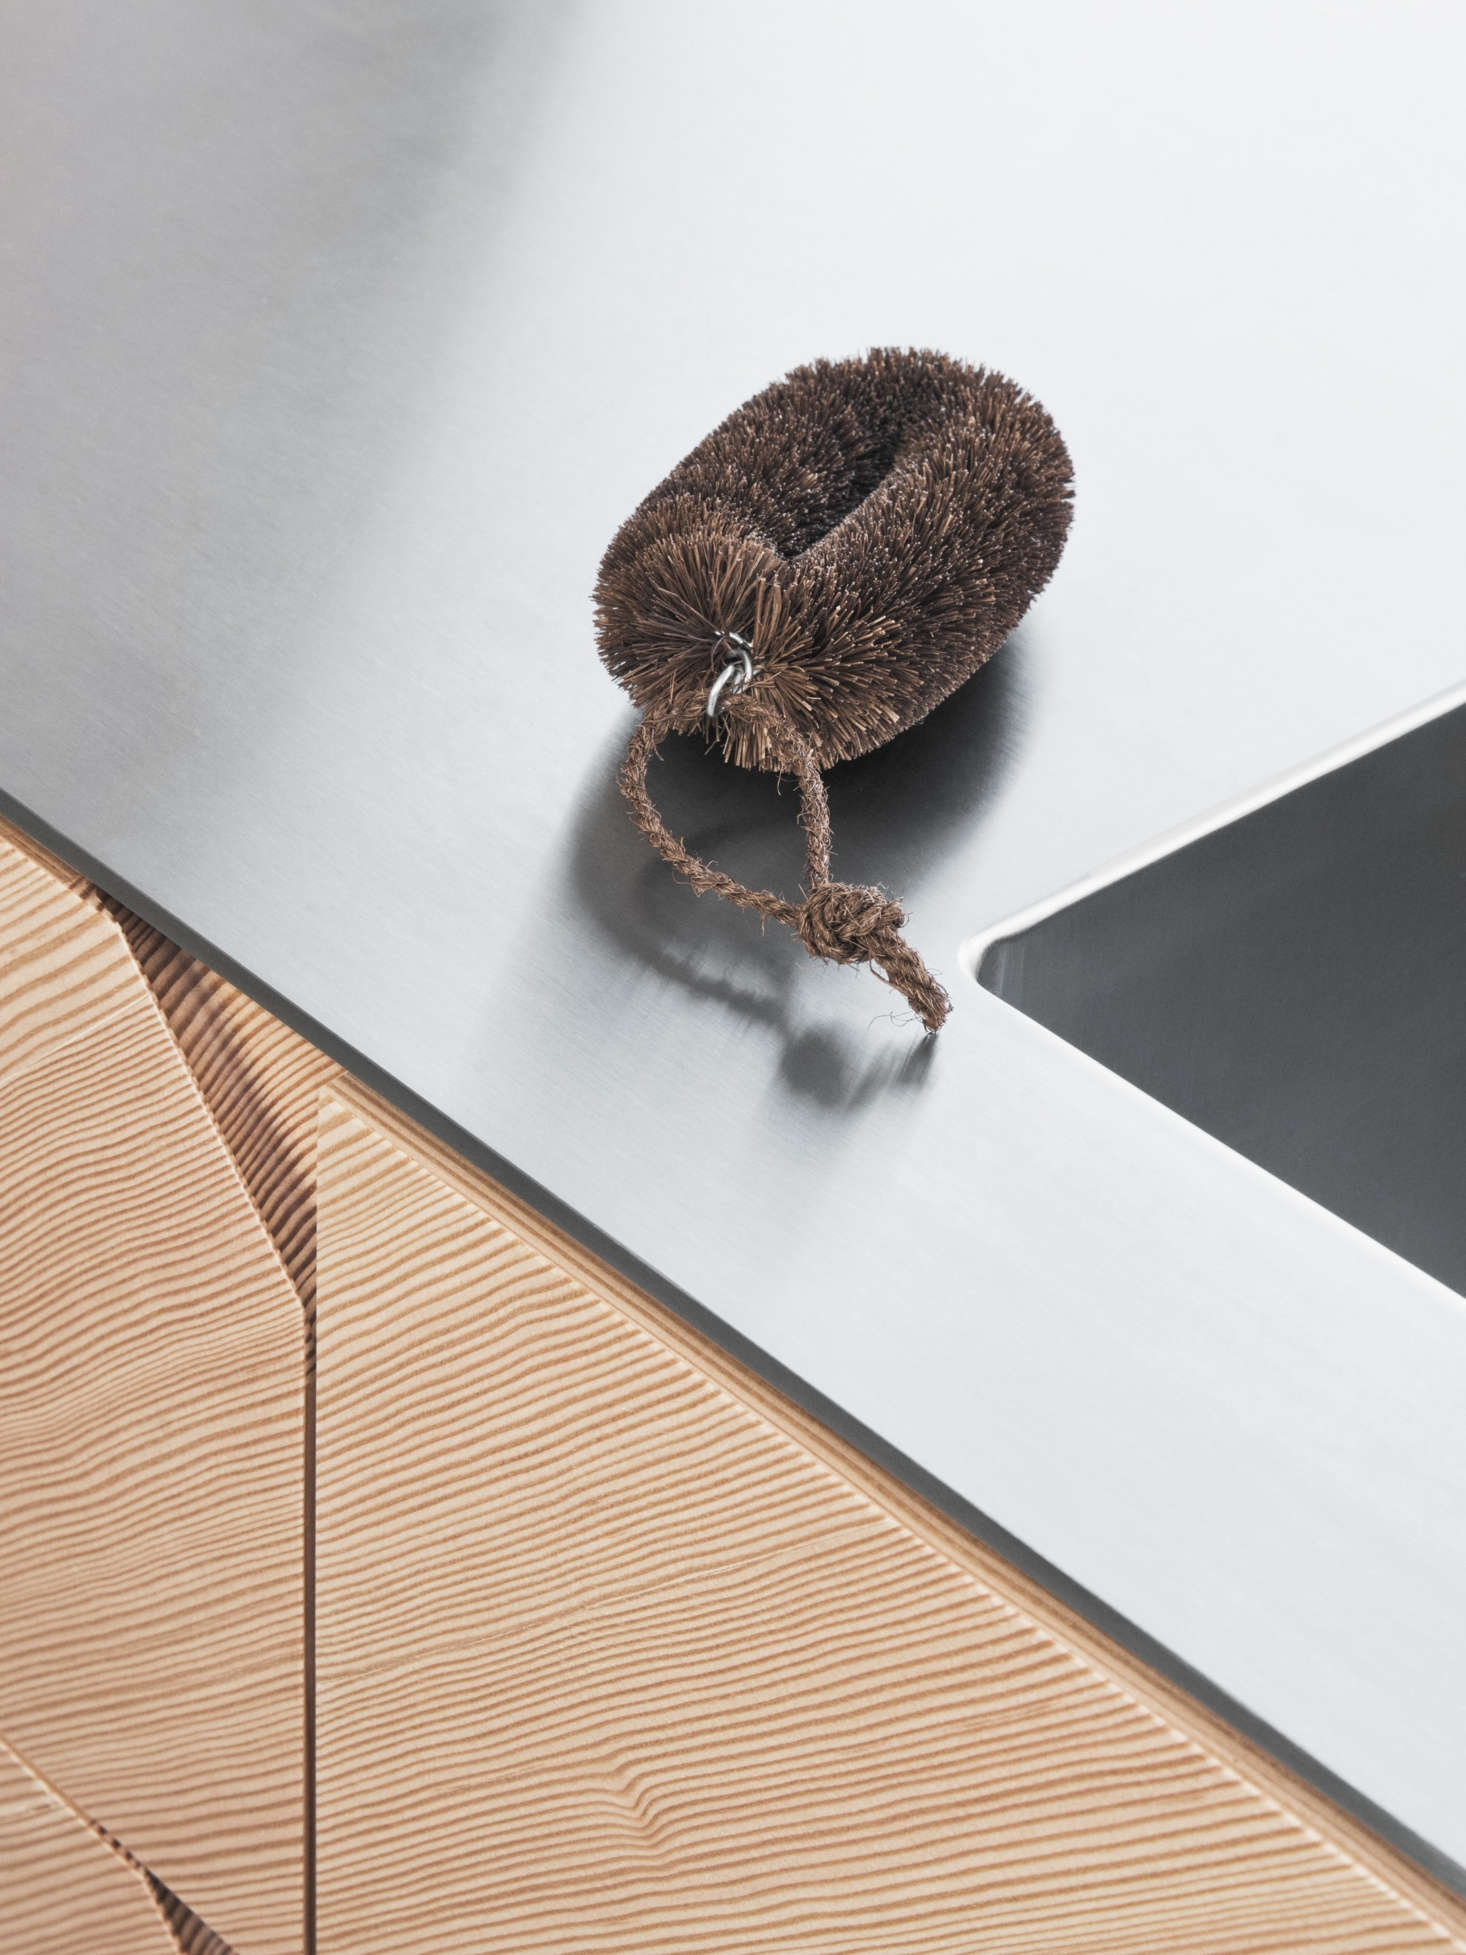 For the counter, Manz recommends applying a floating stainless steel counter, five or eight millimeters thick. The floating look is achieved by inserting strips of MDFthat are recessed from the edge. Reform offers the counter with a seamlessly welded Lavabo sink for $3,600. Solid wood, linoleum, laminate, and concrete countertops are also available.